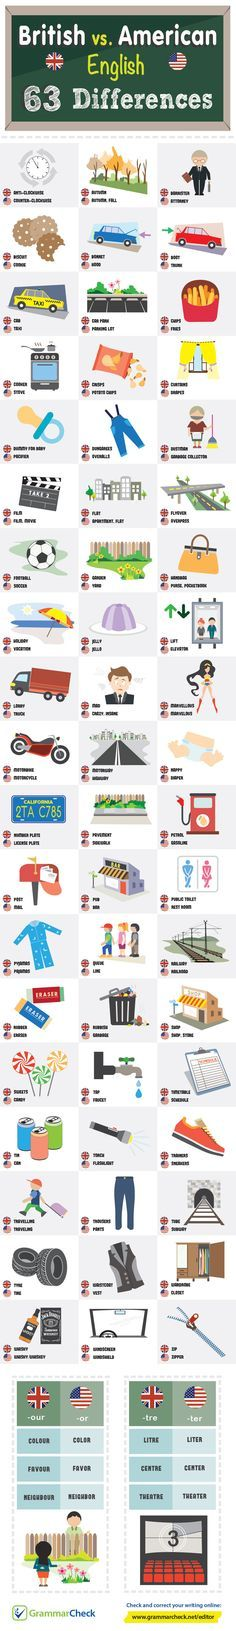 British vs. American English: 63 Differences